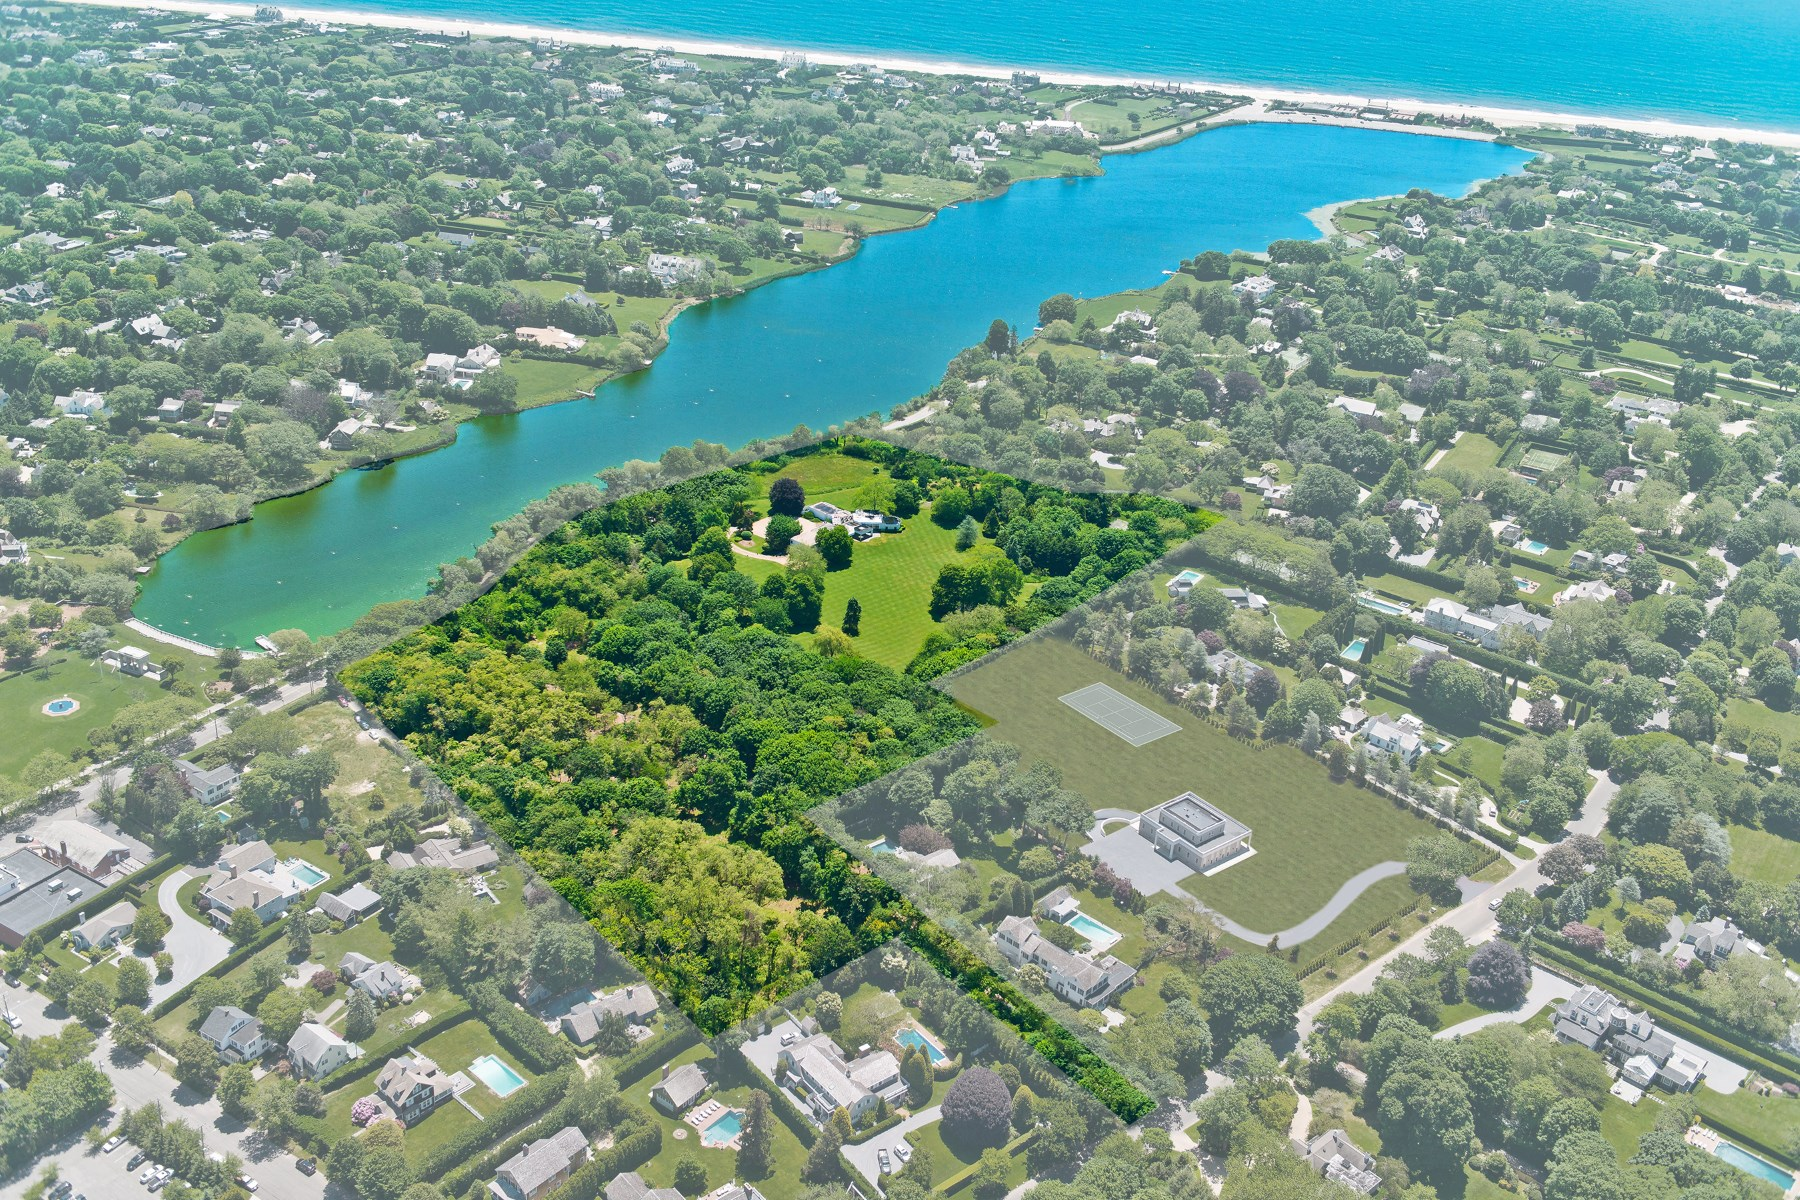 Moradia para Venda às Overlooking Lake Agawam 111, 137, 153 Pond Lane & 52 First Neck Lane 4 properties combined Southampton, Nova York, 11968 Estados Unidos